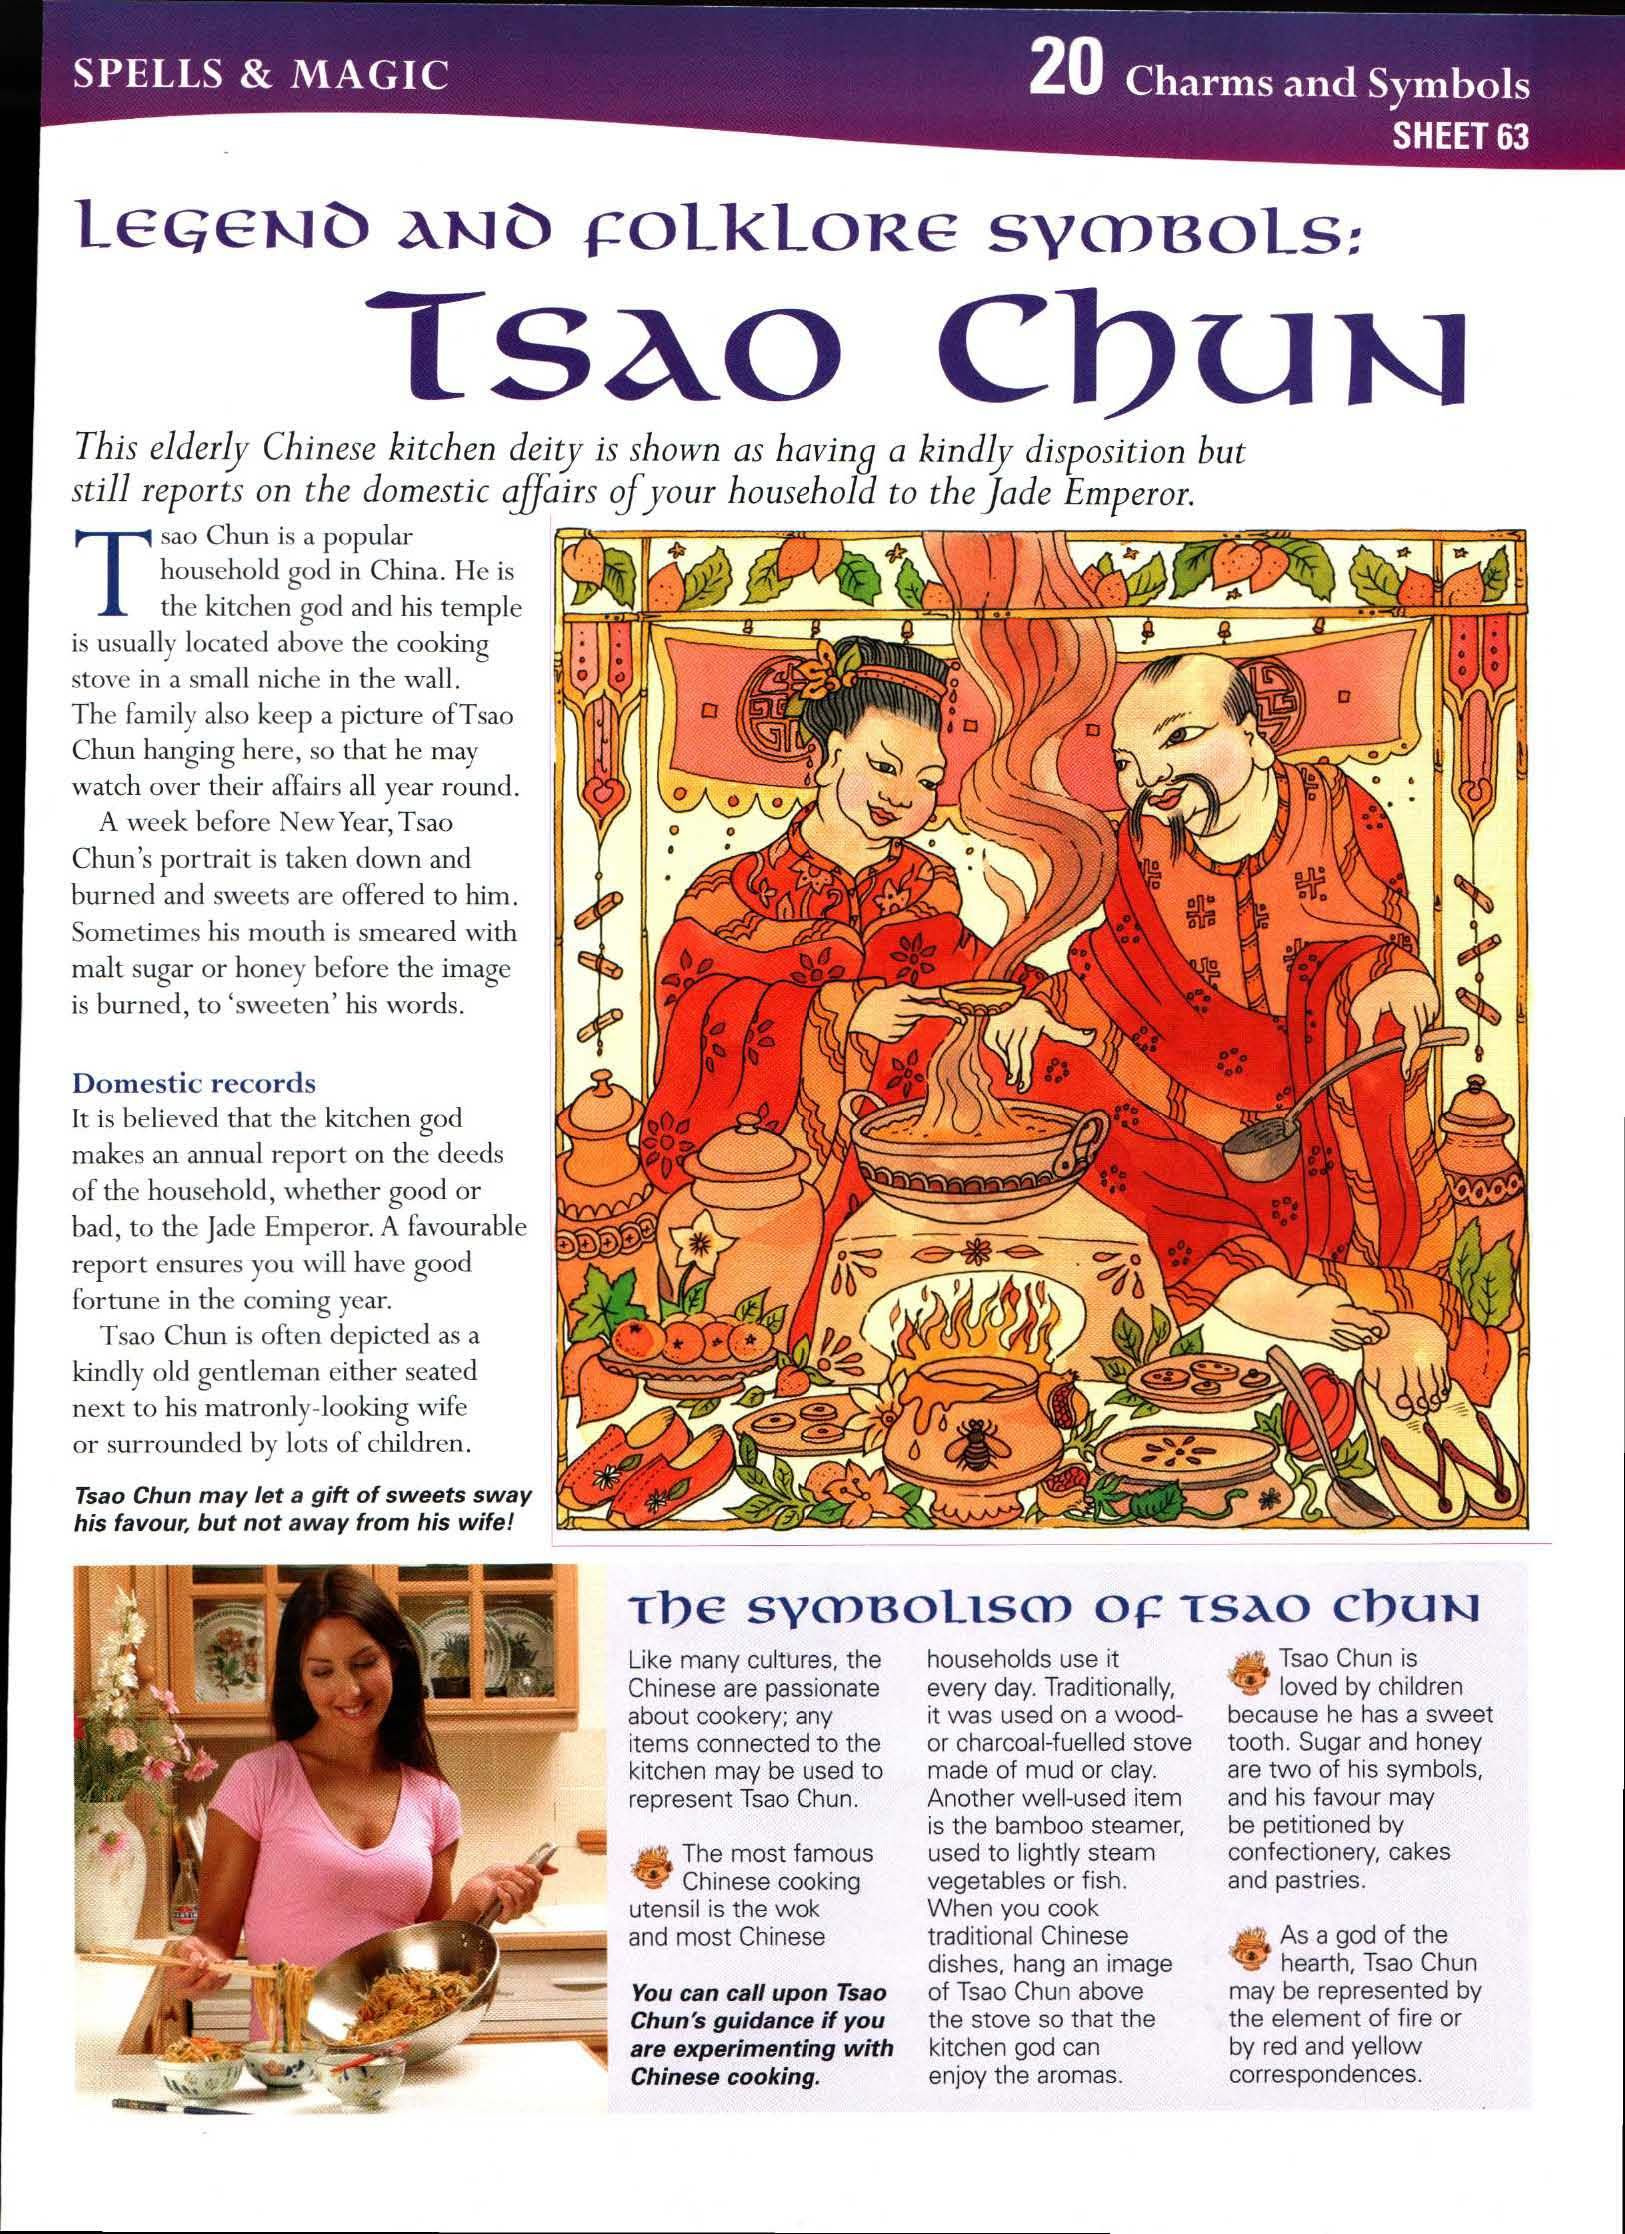 legend and Folklore Symbols: Tsao Chun | stories | Wiccan spells